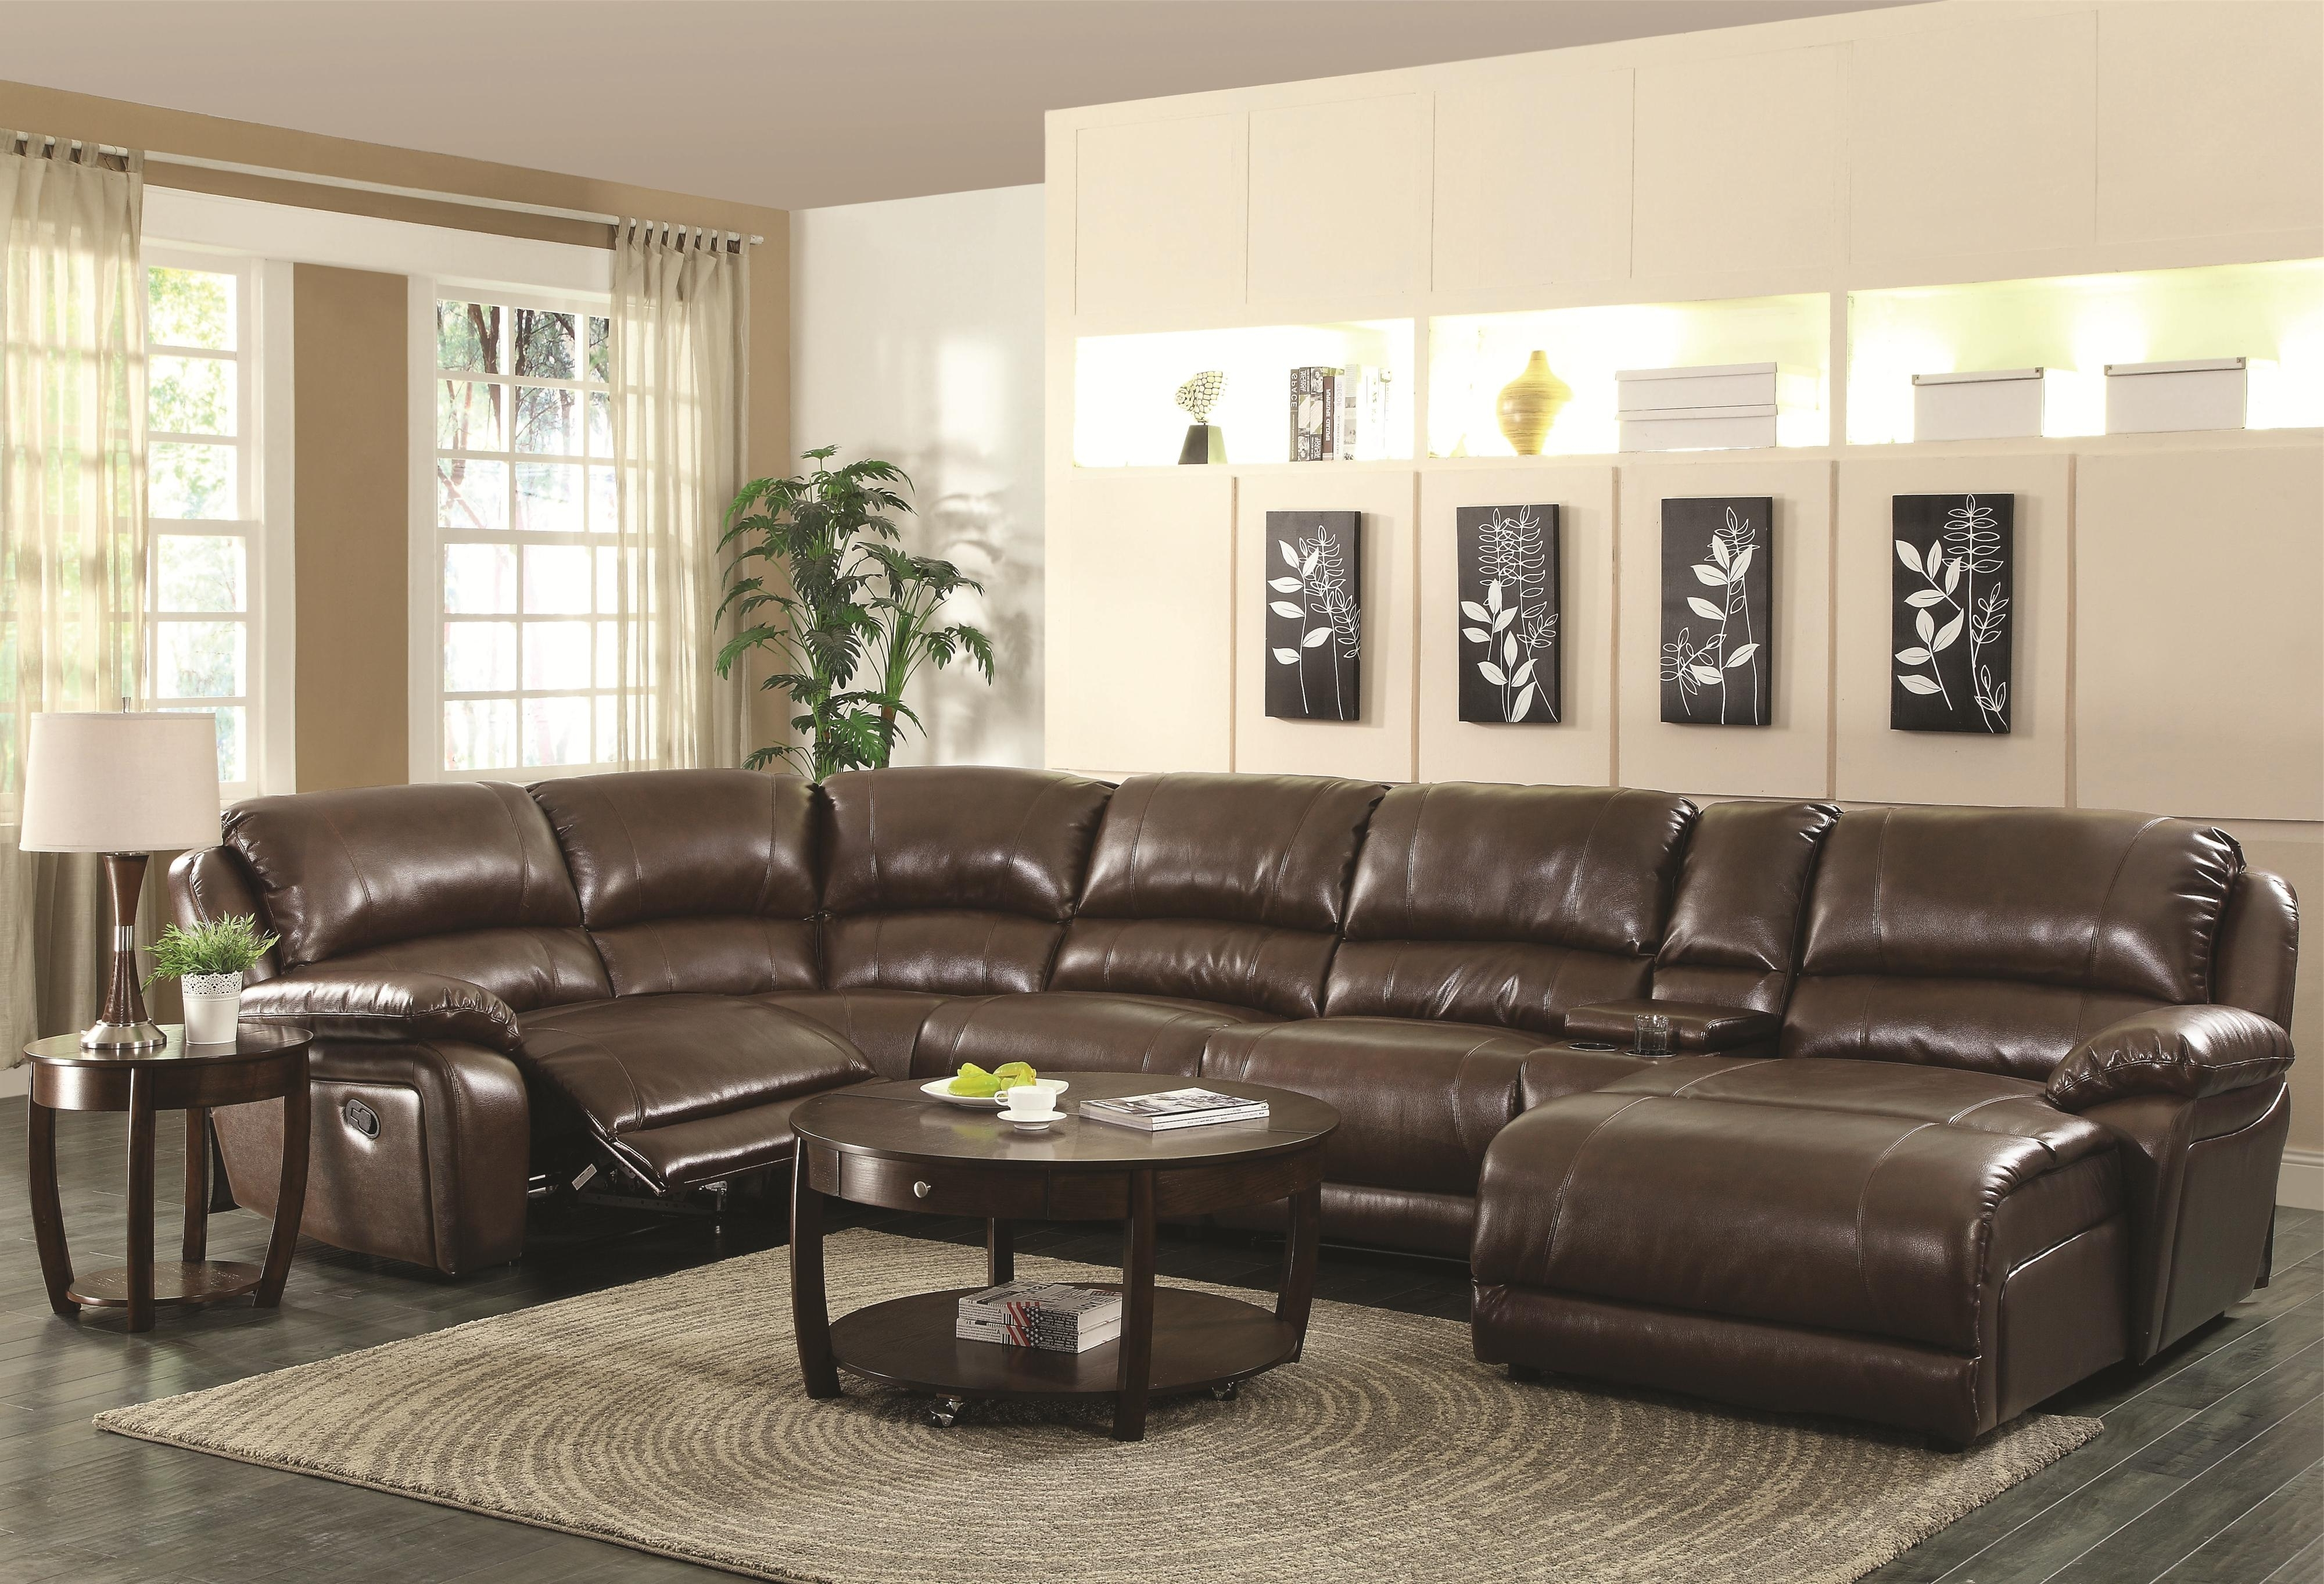 Sectionals With Recliner And Chaise Intended For Most Recent Coaster Mackenzie Chestnut 6 Piece Reclining Sectional Sofa With (View 11 of 15)